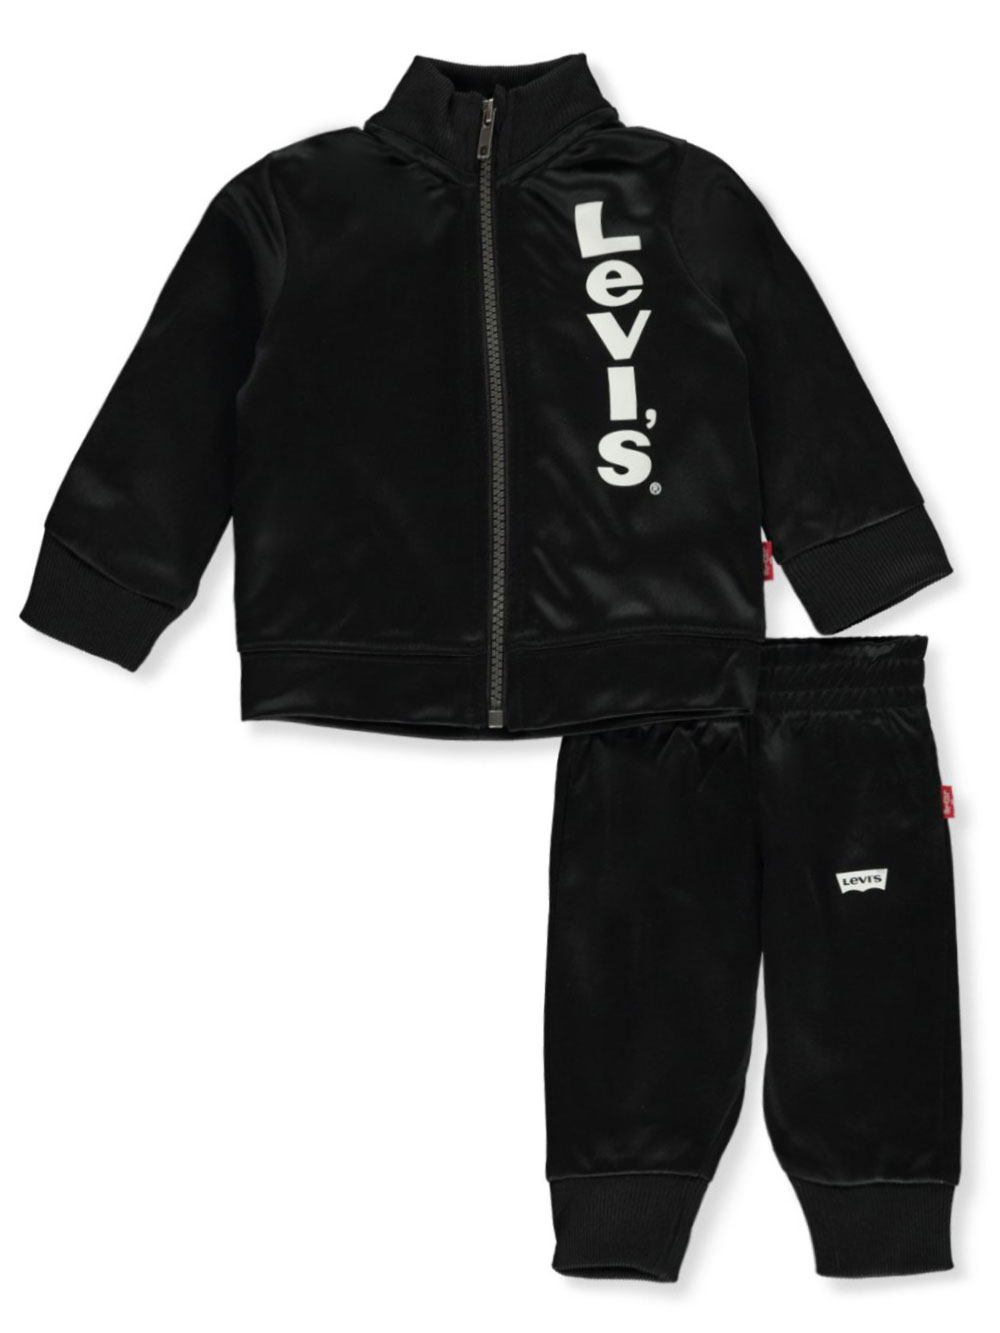 Boys Black and Red Active Sets